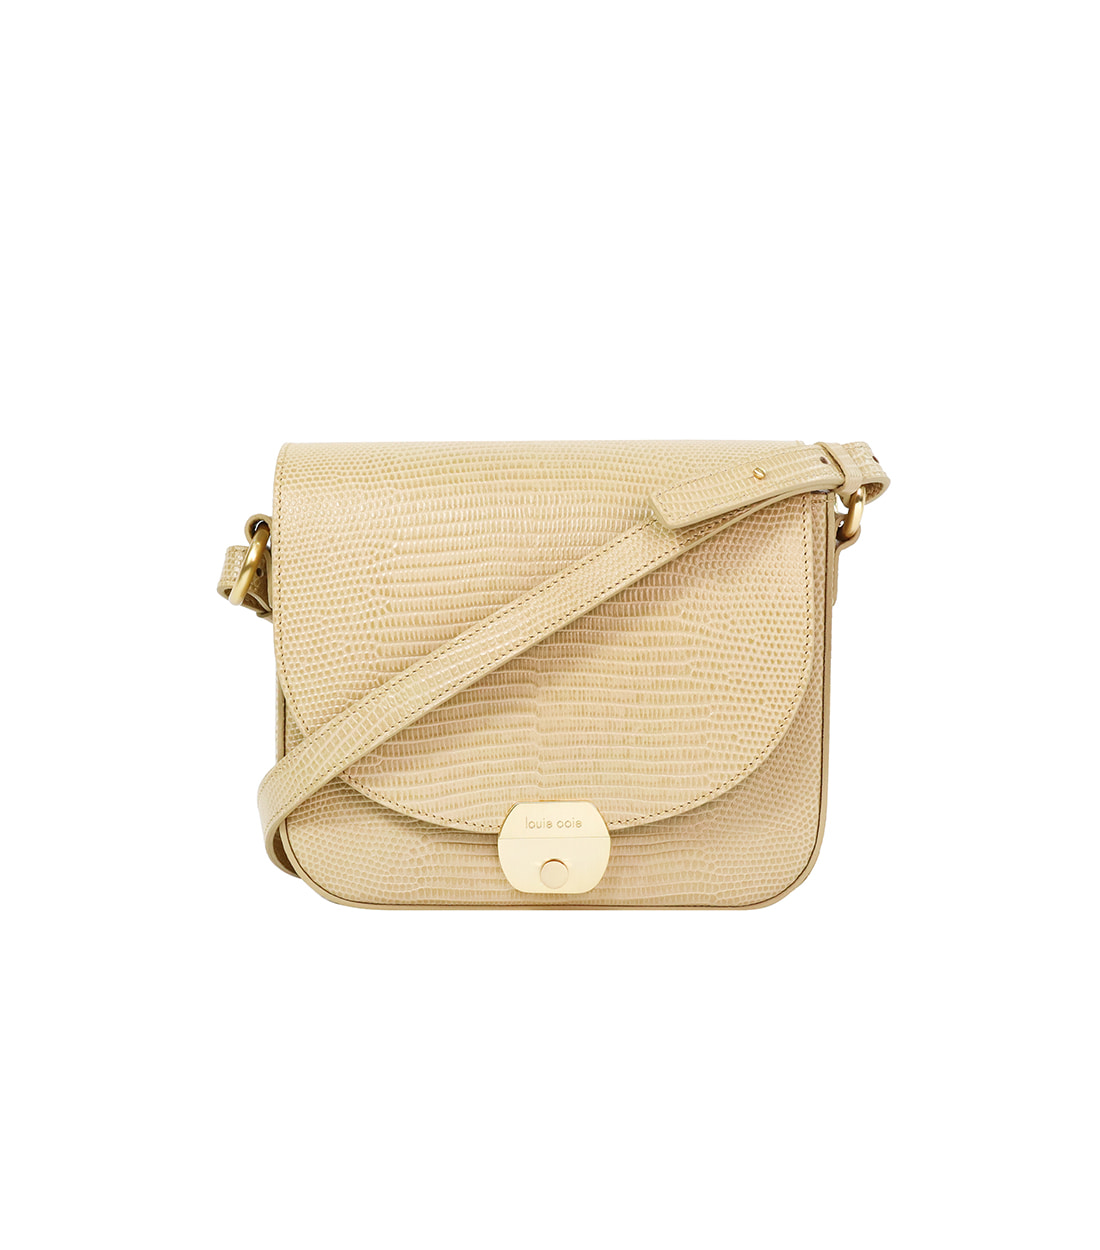 betty bag - beige embo